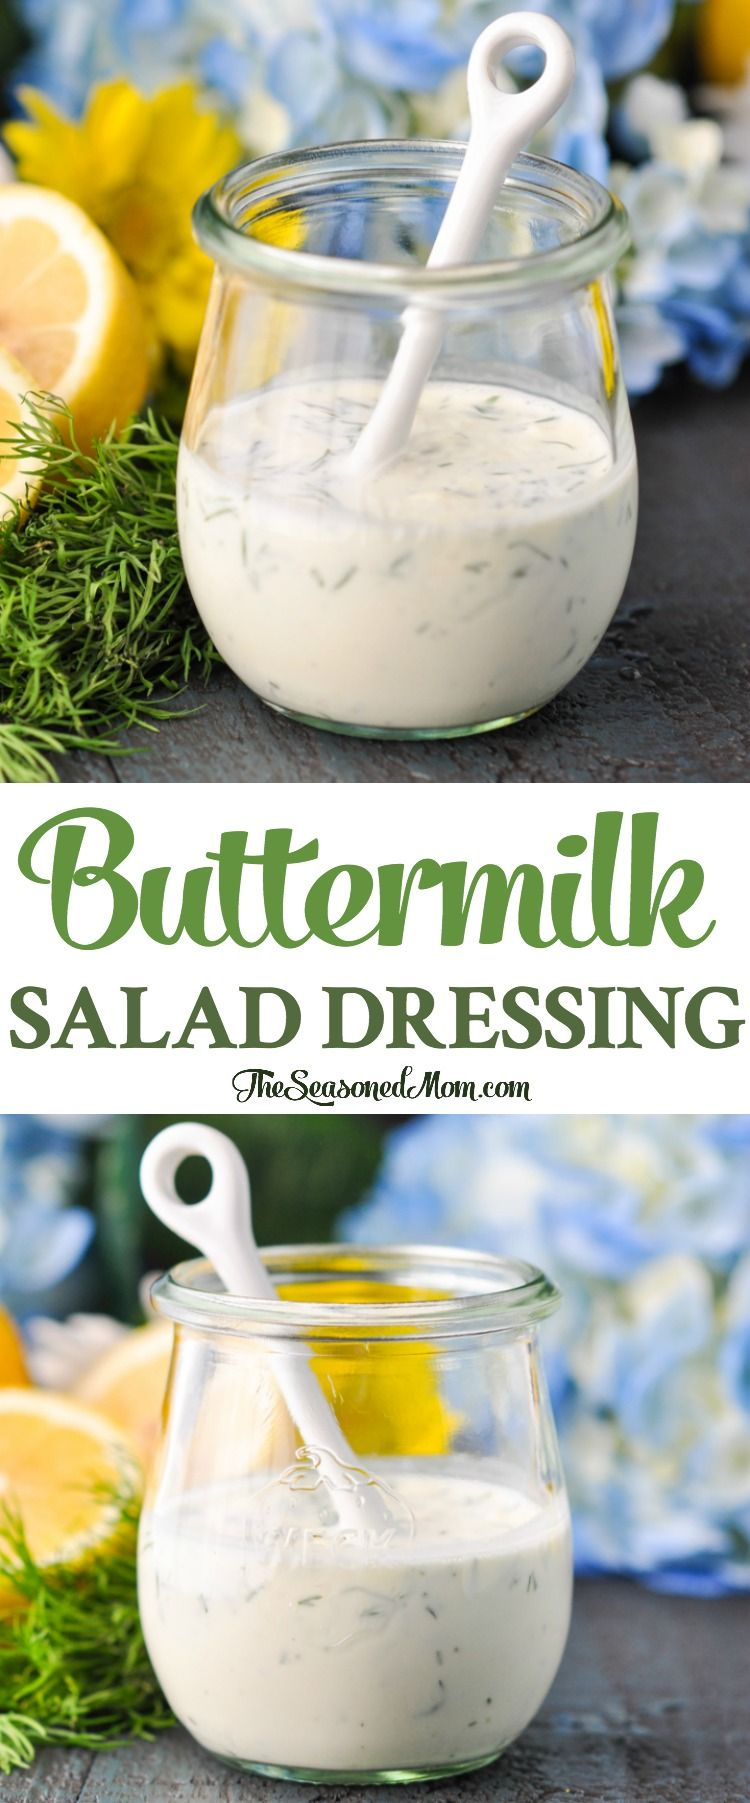 Buttermilk Dressing Recipe Buttermilk Salad Dressing Salad Dressing Recipes Recipes